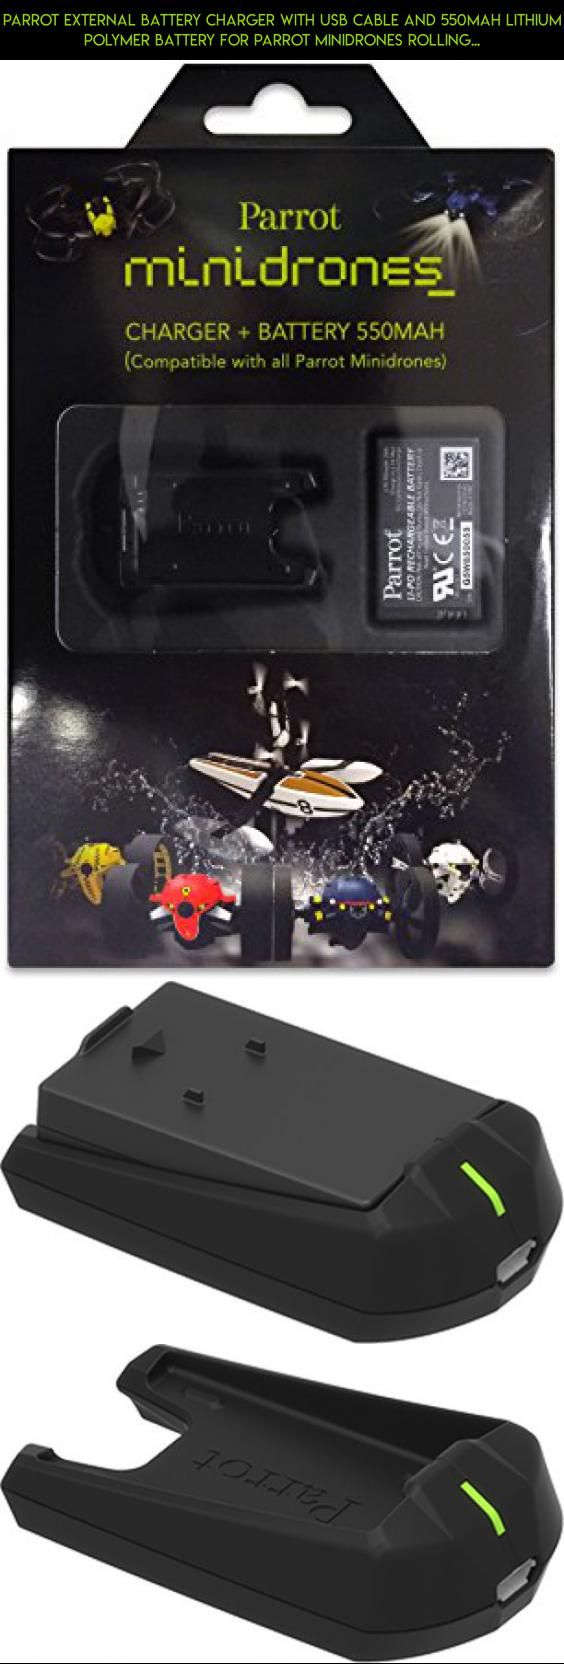 Parrot External Battery Charger with USB Cable and 550mAh Lithium Polymer Battery for Parrot MiniDrones Rolling Spider and Jumping Sumo #camera #parrot #battery #kit #parts #plans #drone #tech #drone #technology #products #shopping #racing #gadgets #fpv